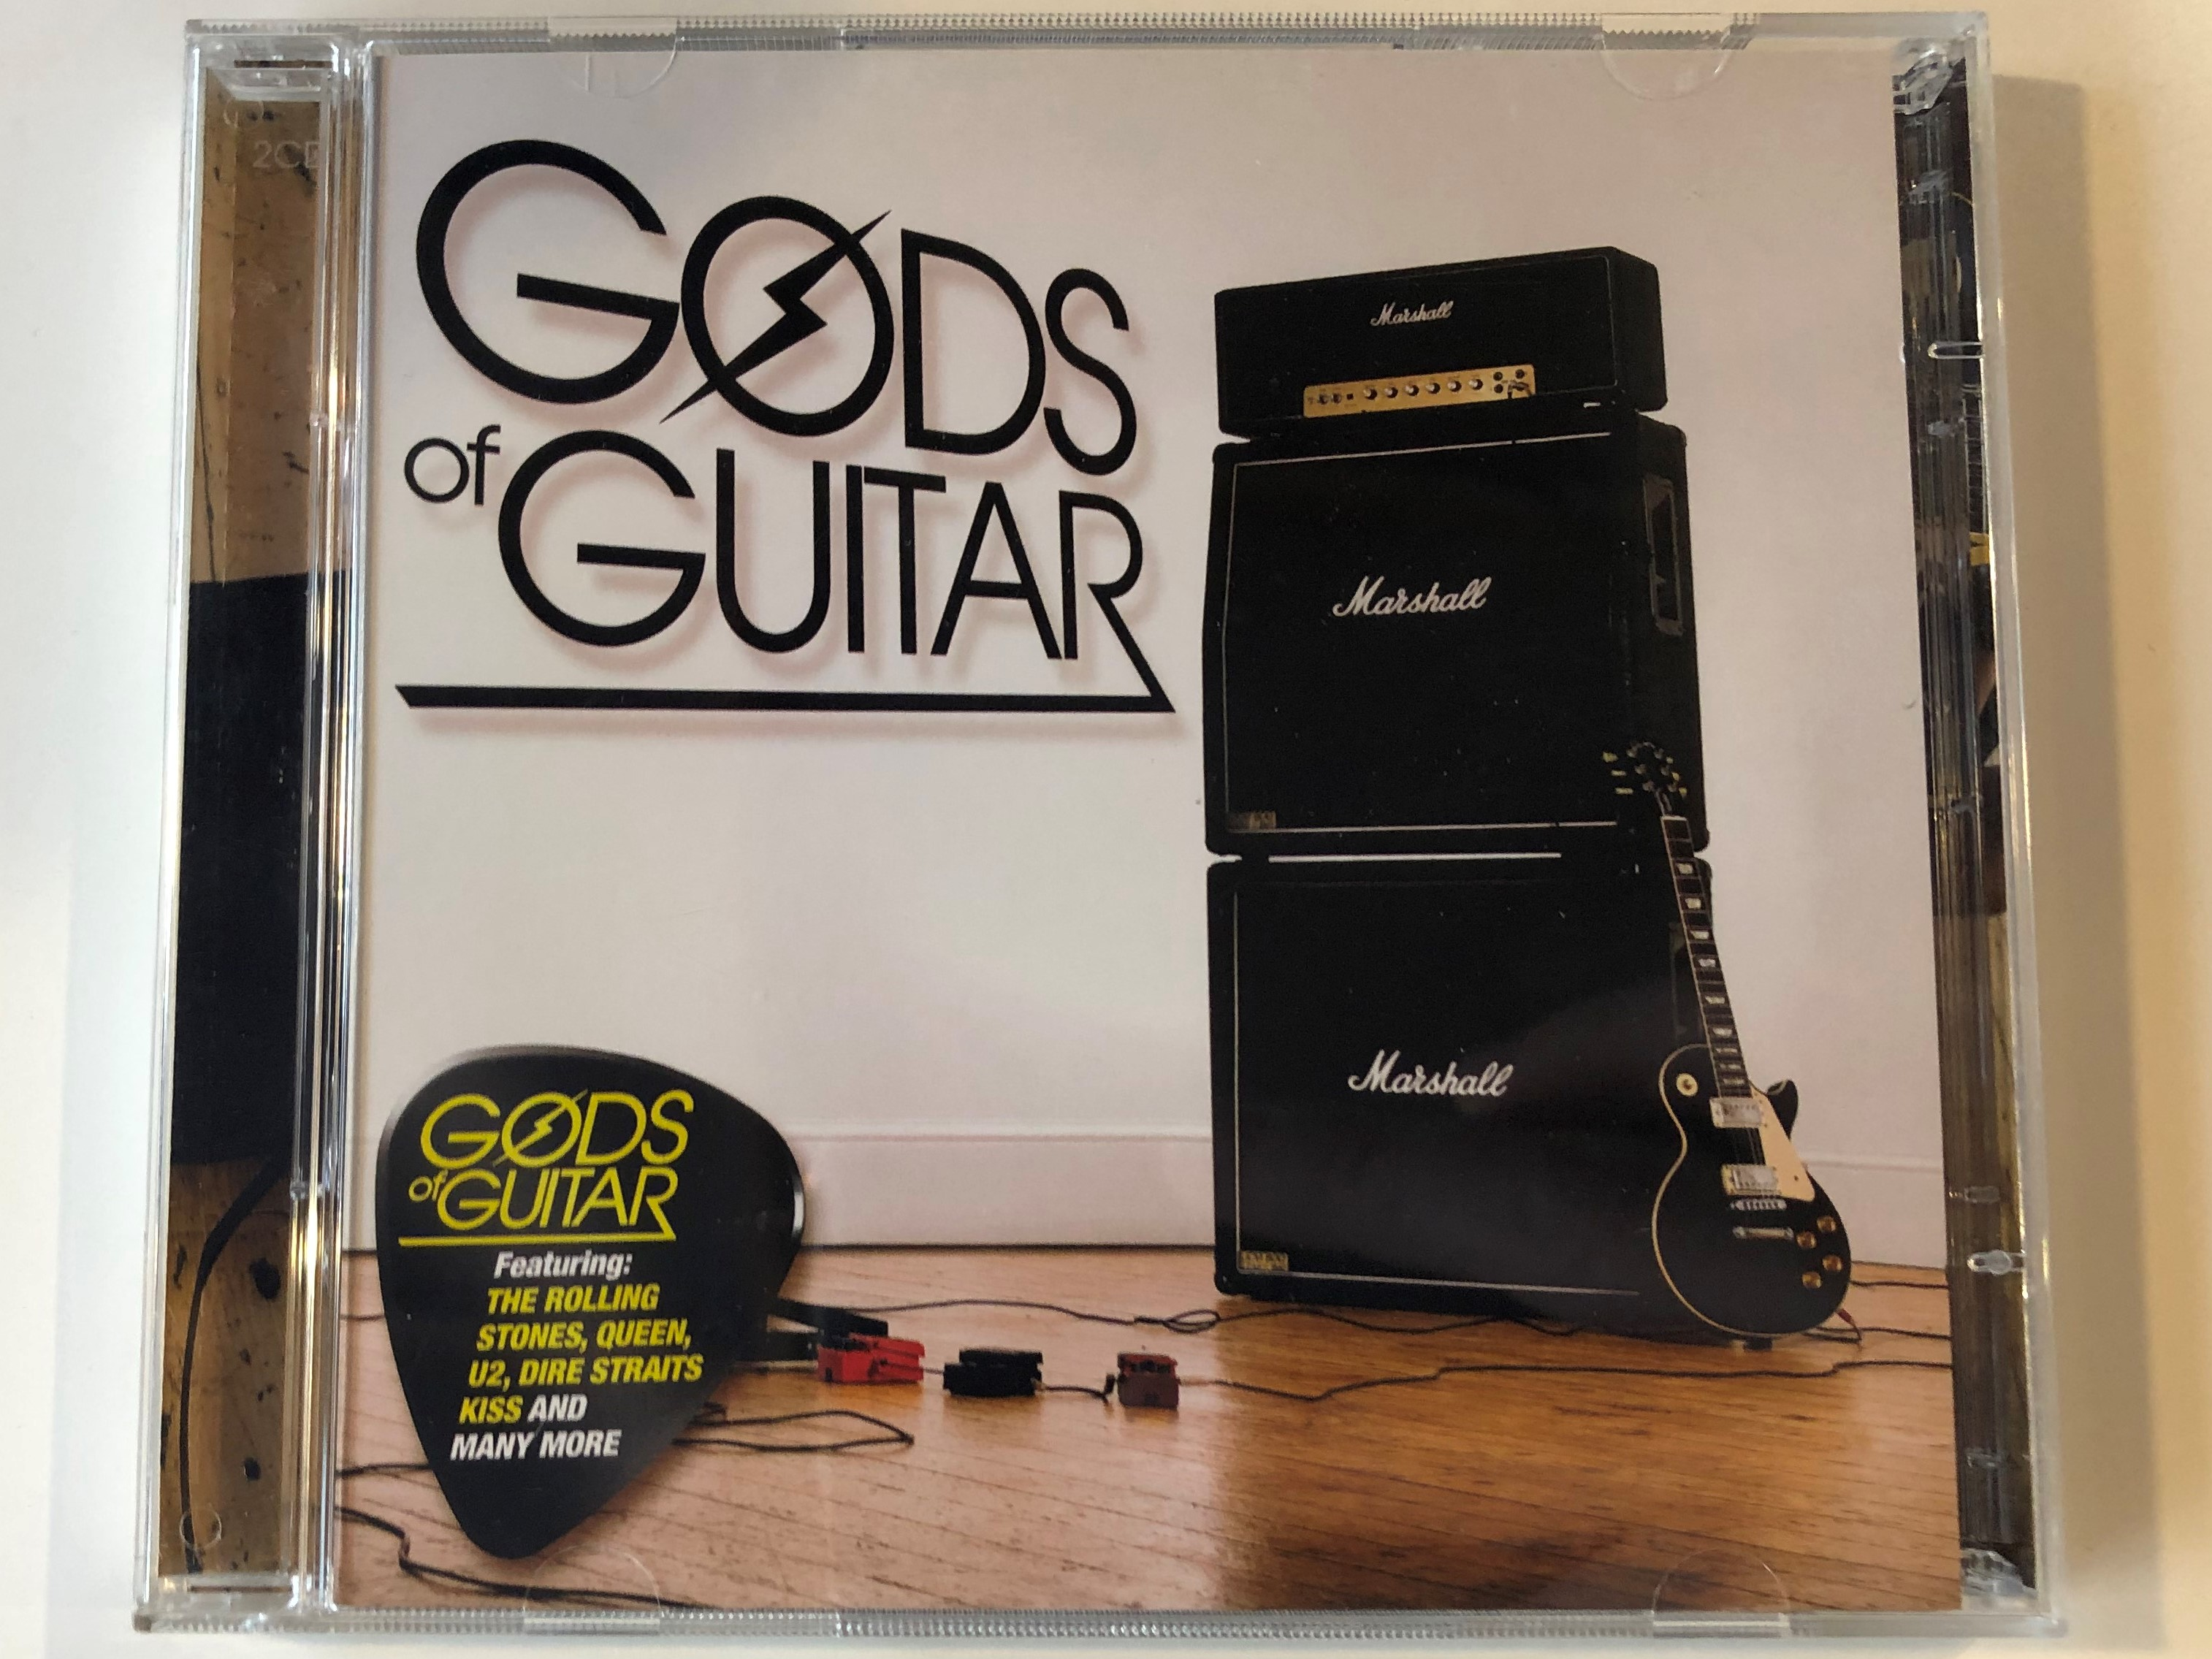 gods-of-guitar-featuring-the-rolling-stones-queen-u2-dire-straits-kiss-and-many-more-universal-2x-audio-cd-2010-5330546-1-.jpg